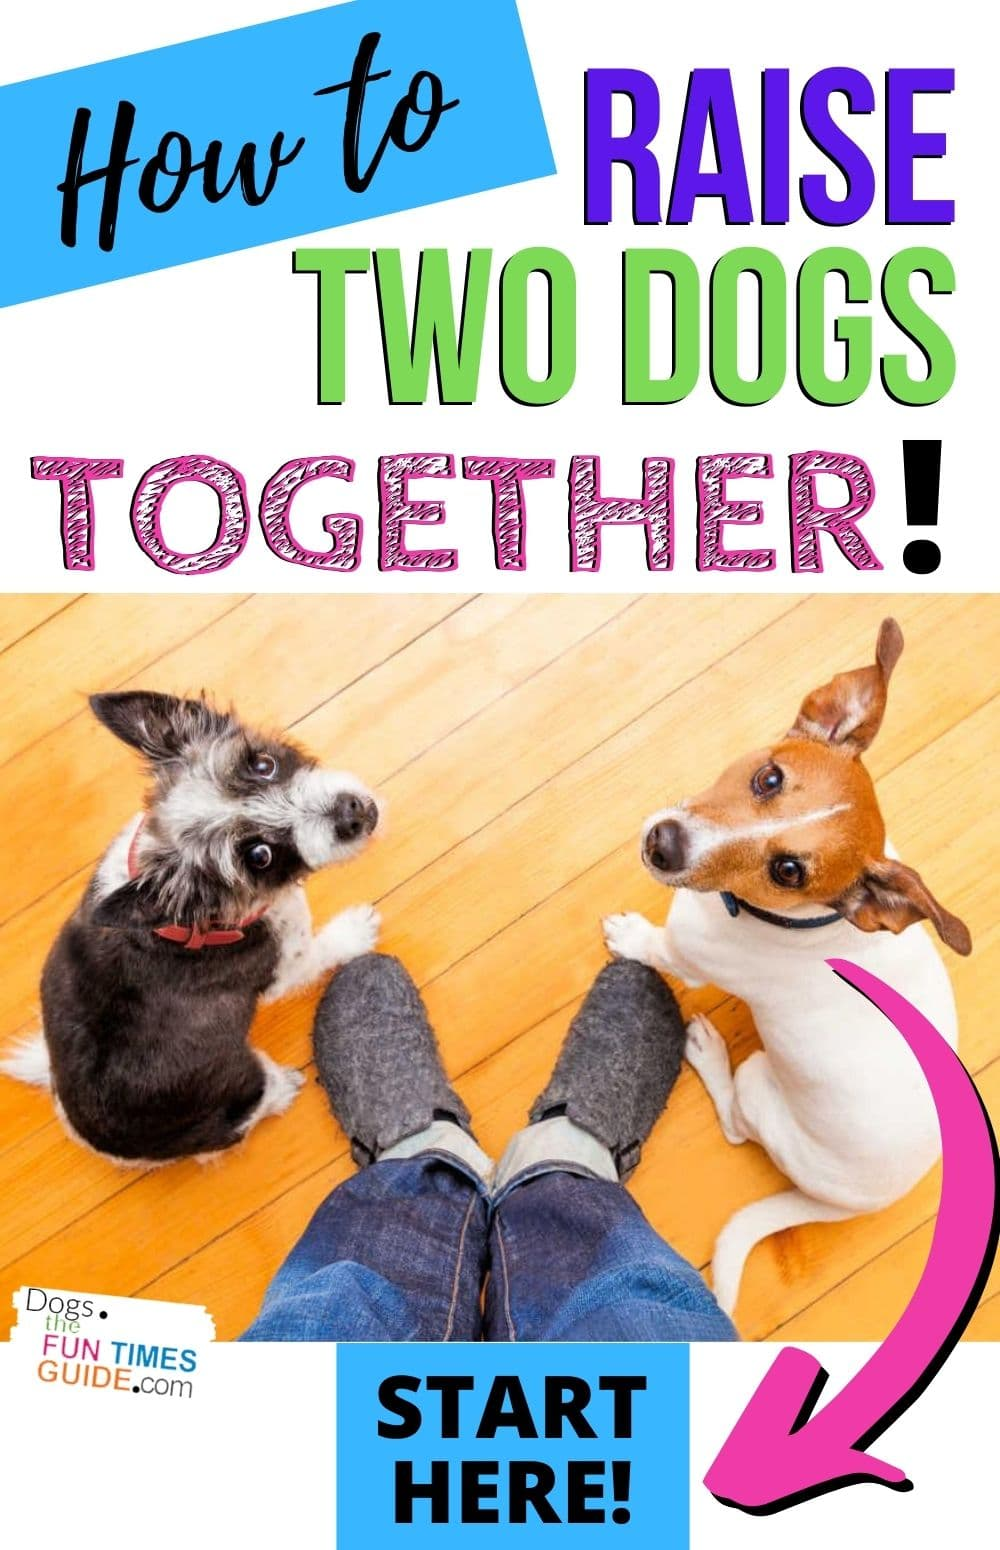 Tips For Raising Two Dogs Together: How To Manage A Multi-Dog Household With Ease